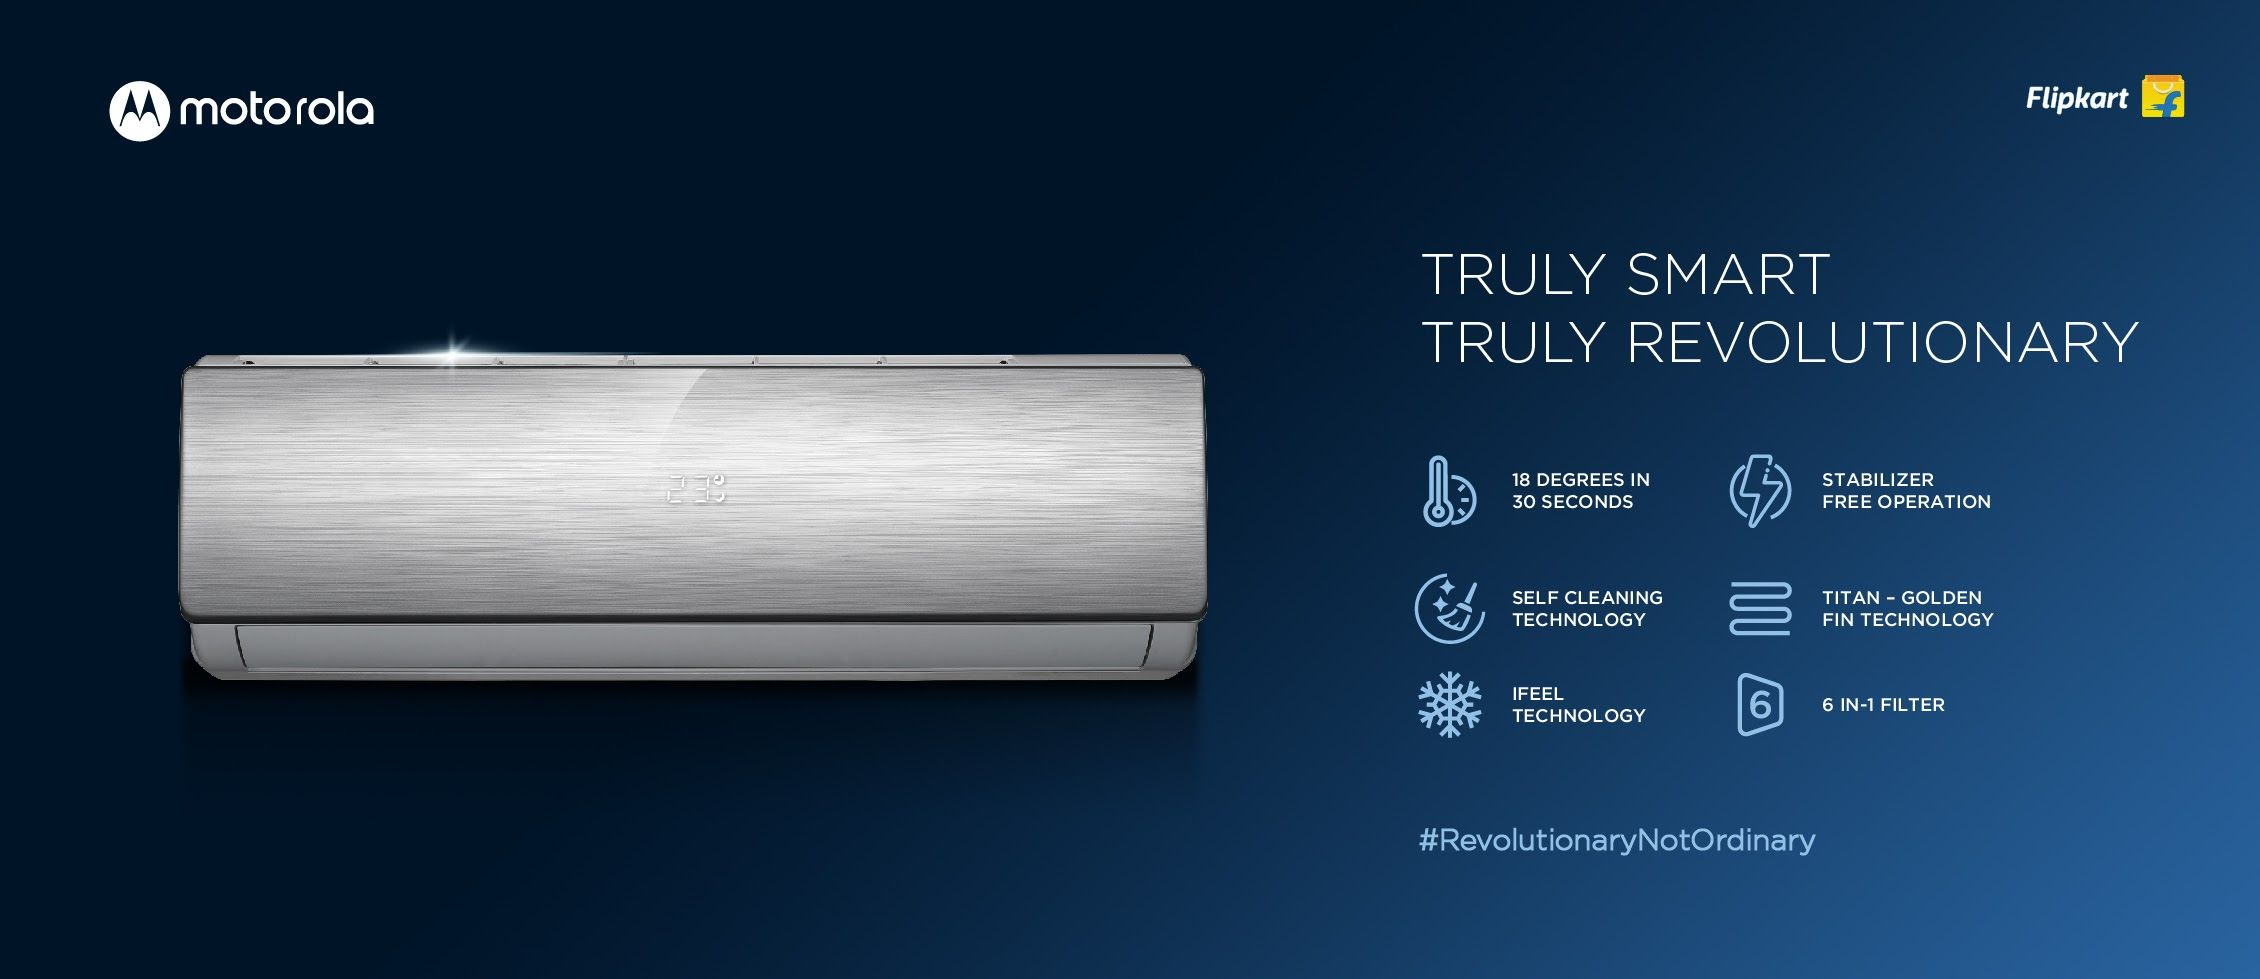 Motorola has launched a total of five air conditioners in India